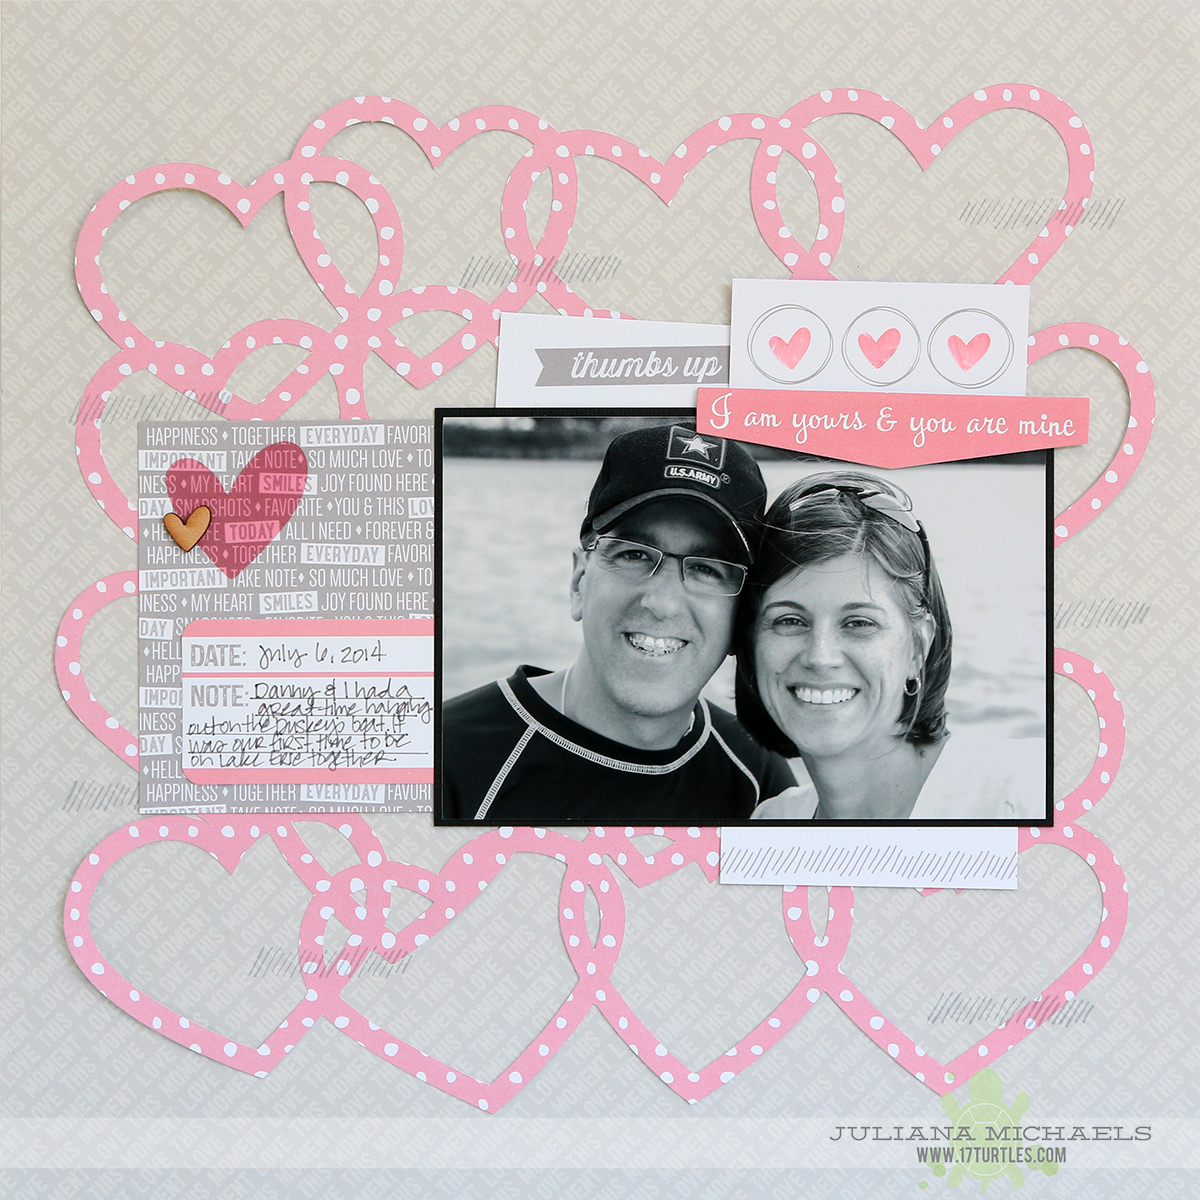 I Am Yours Scrapbook Page by Juliana Michaels for Elle's Studio using Entwined Hearts Free Digital Cut File 17turtles